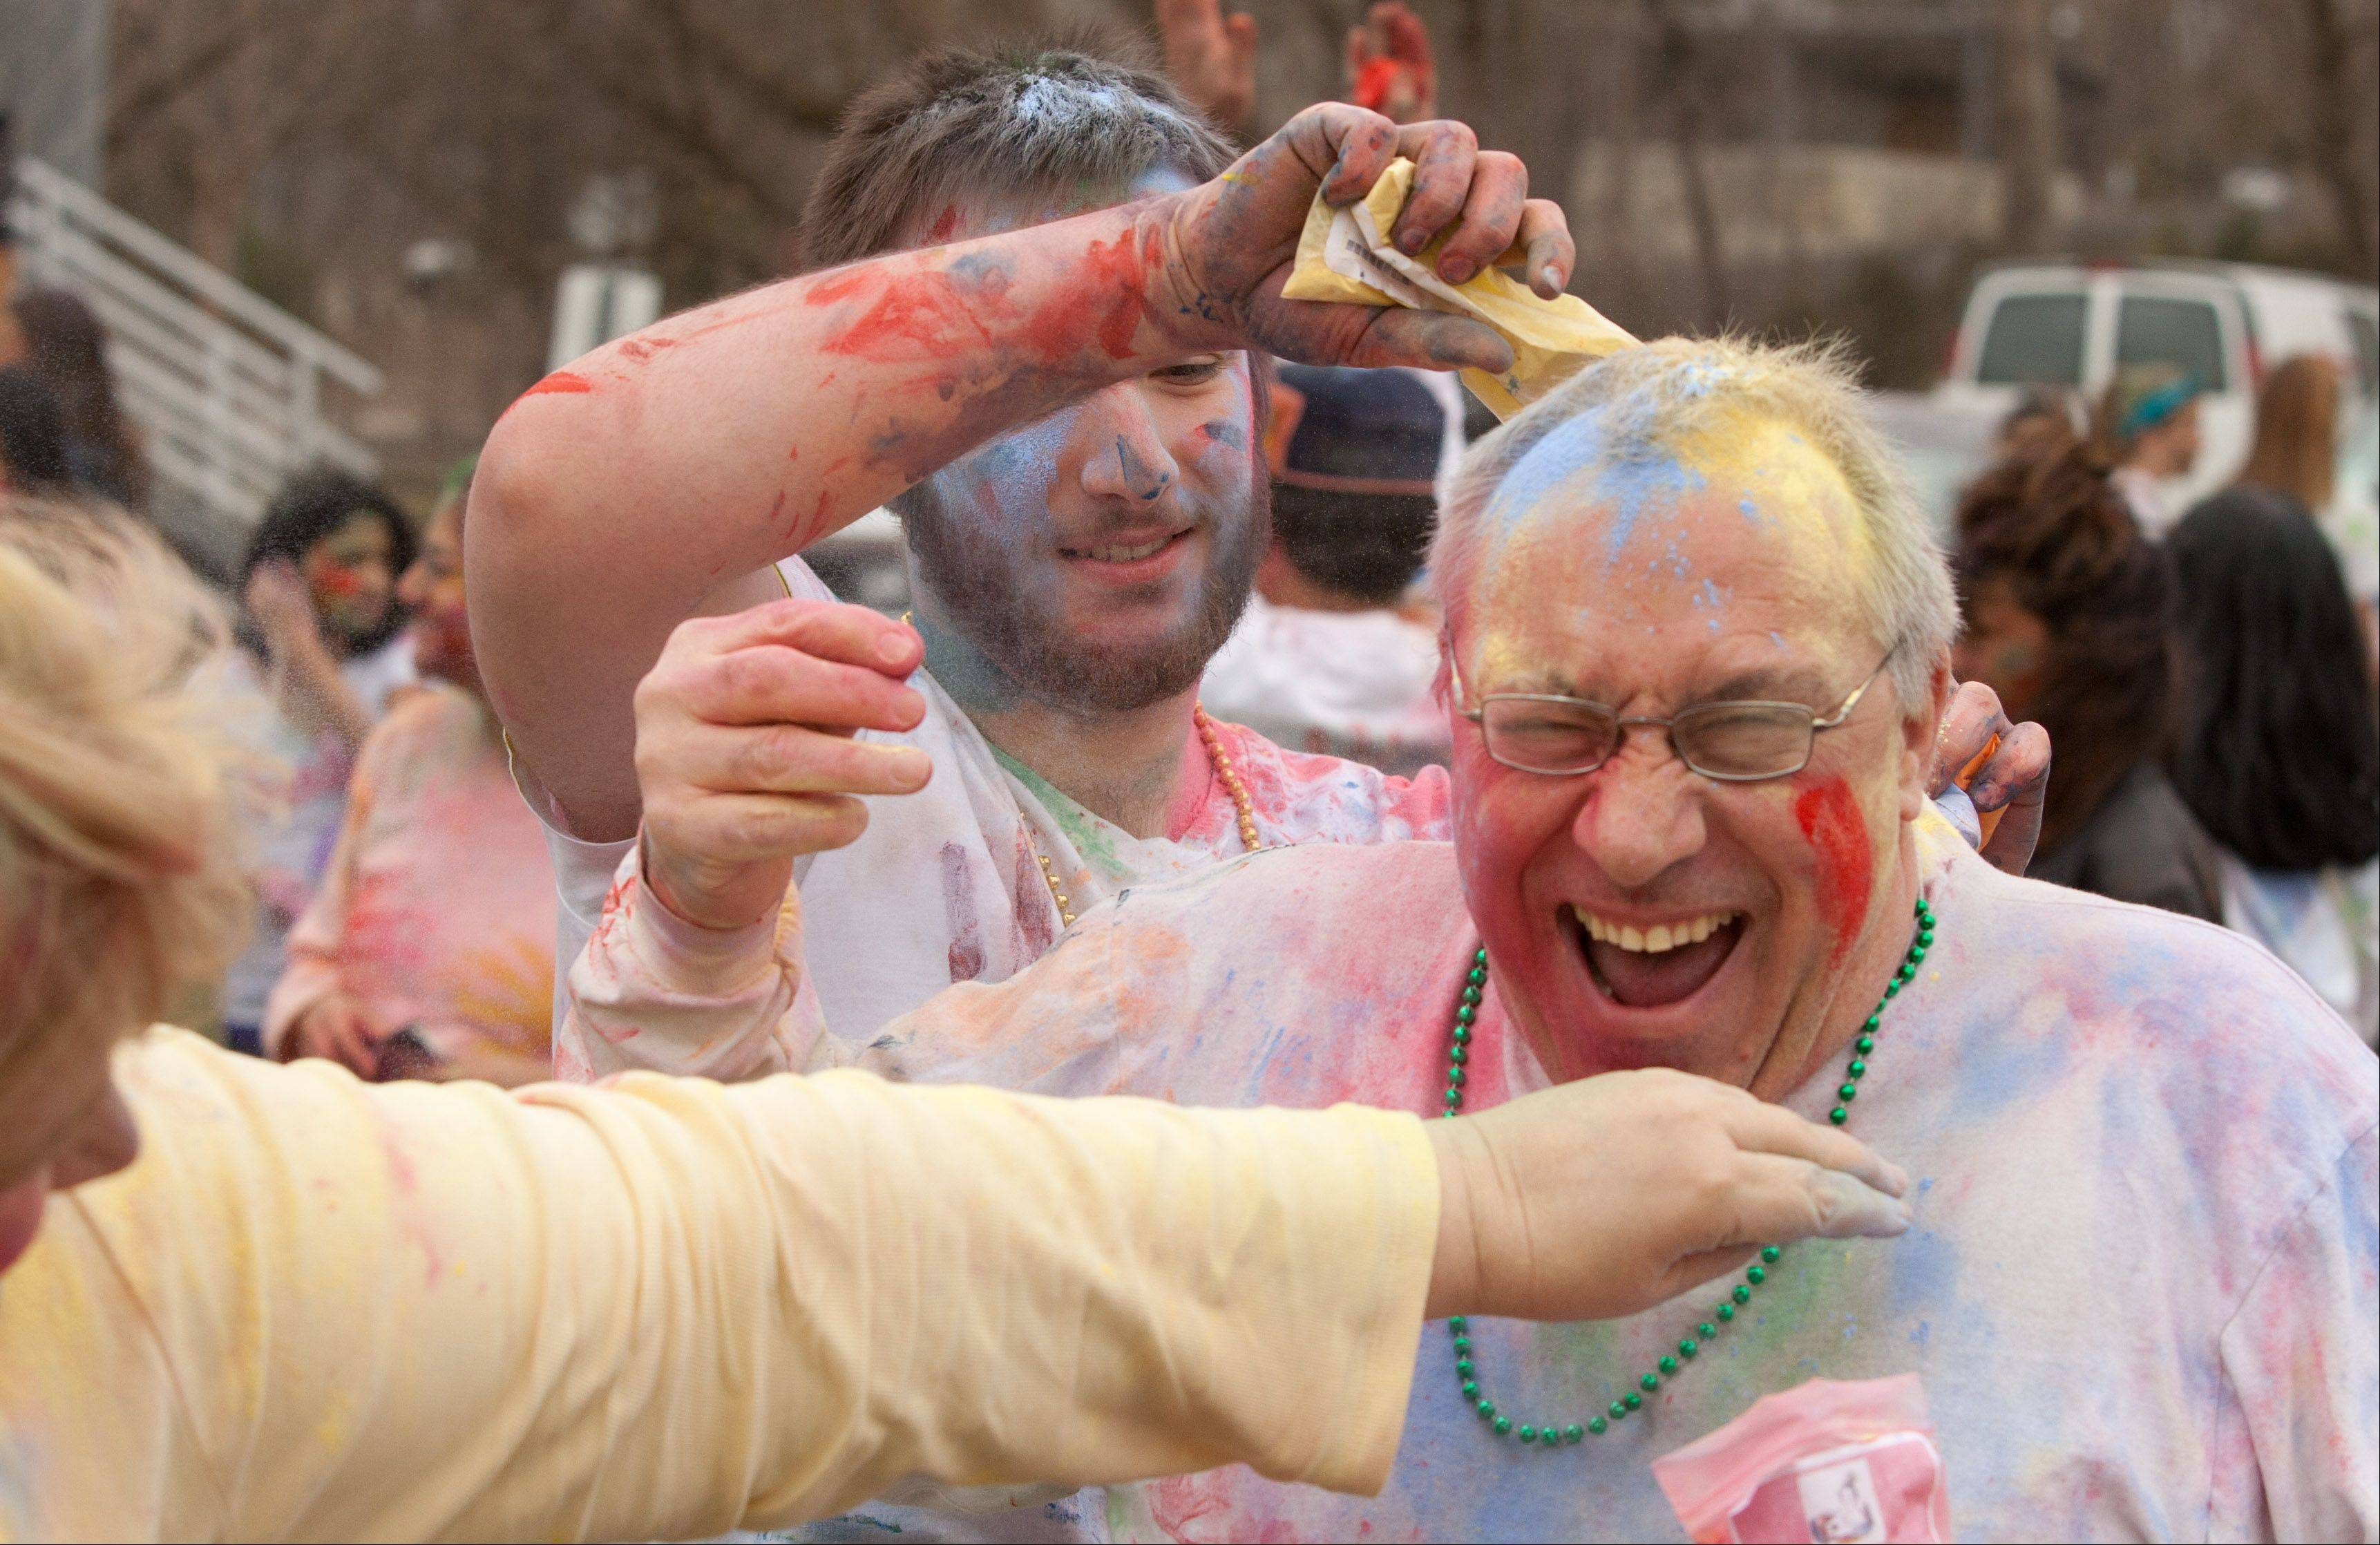 Karl Michalec of Elk Grove gets showered in yellow flour by his son, Ian, and wife, Jeanie, on Saturday in Naperville during the Simply Vedic Cultural Society�s Festival of Colors, a celebration of the Hindu festival that marks the passing of winter and arrival of spring.